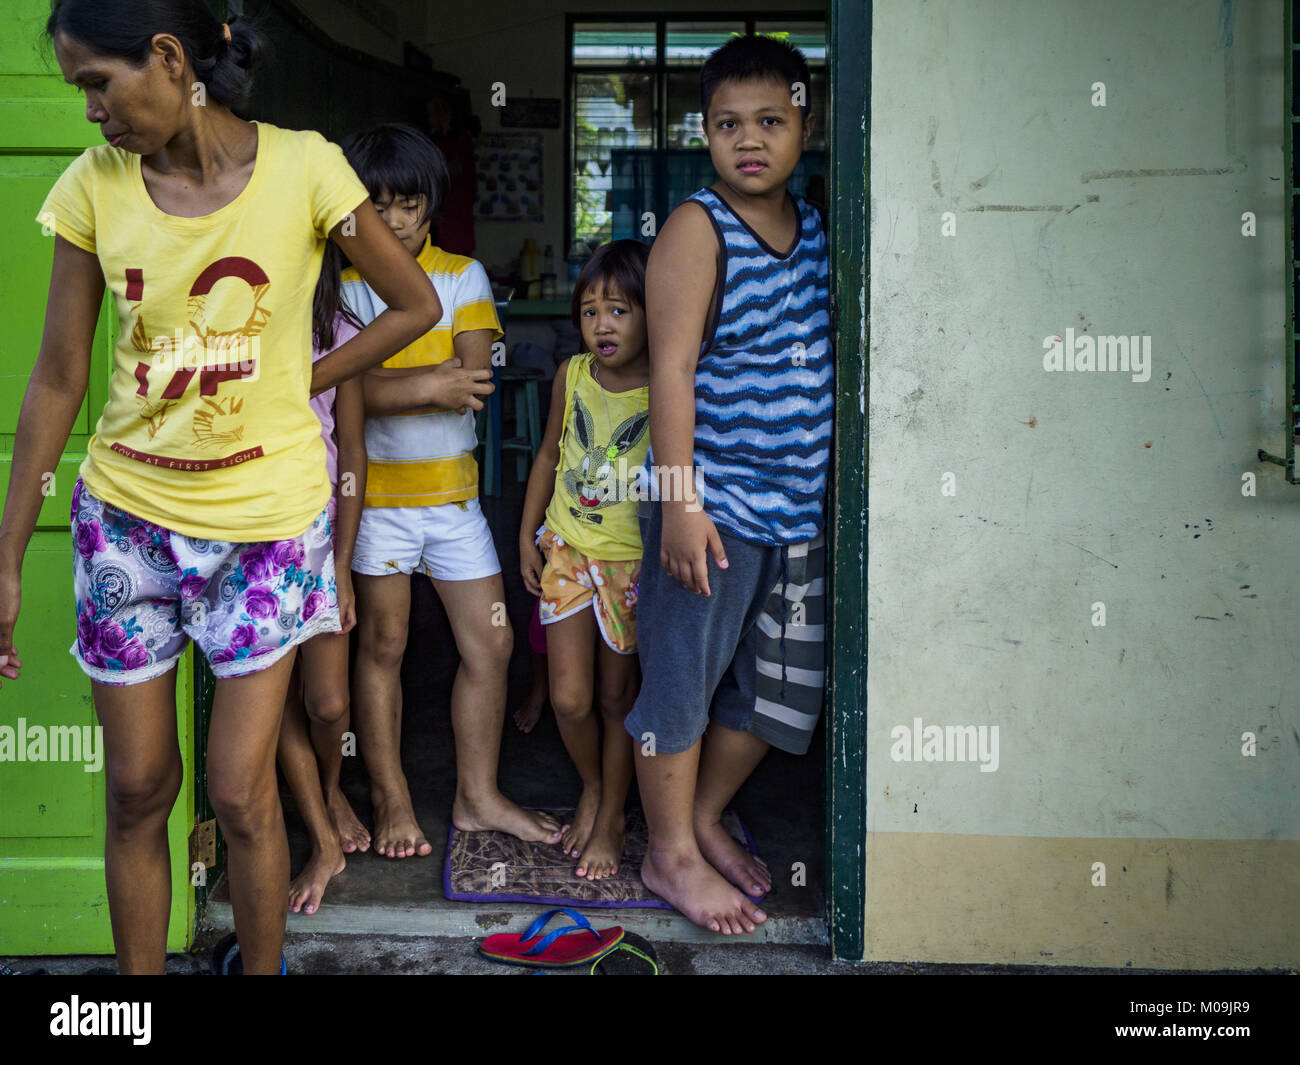 Camalig, Albay, Philippines. 20th Jan, 2018. Children in the doorway of their dorm, which is actually a classroom, - Stock Image